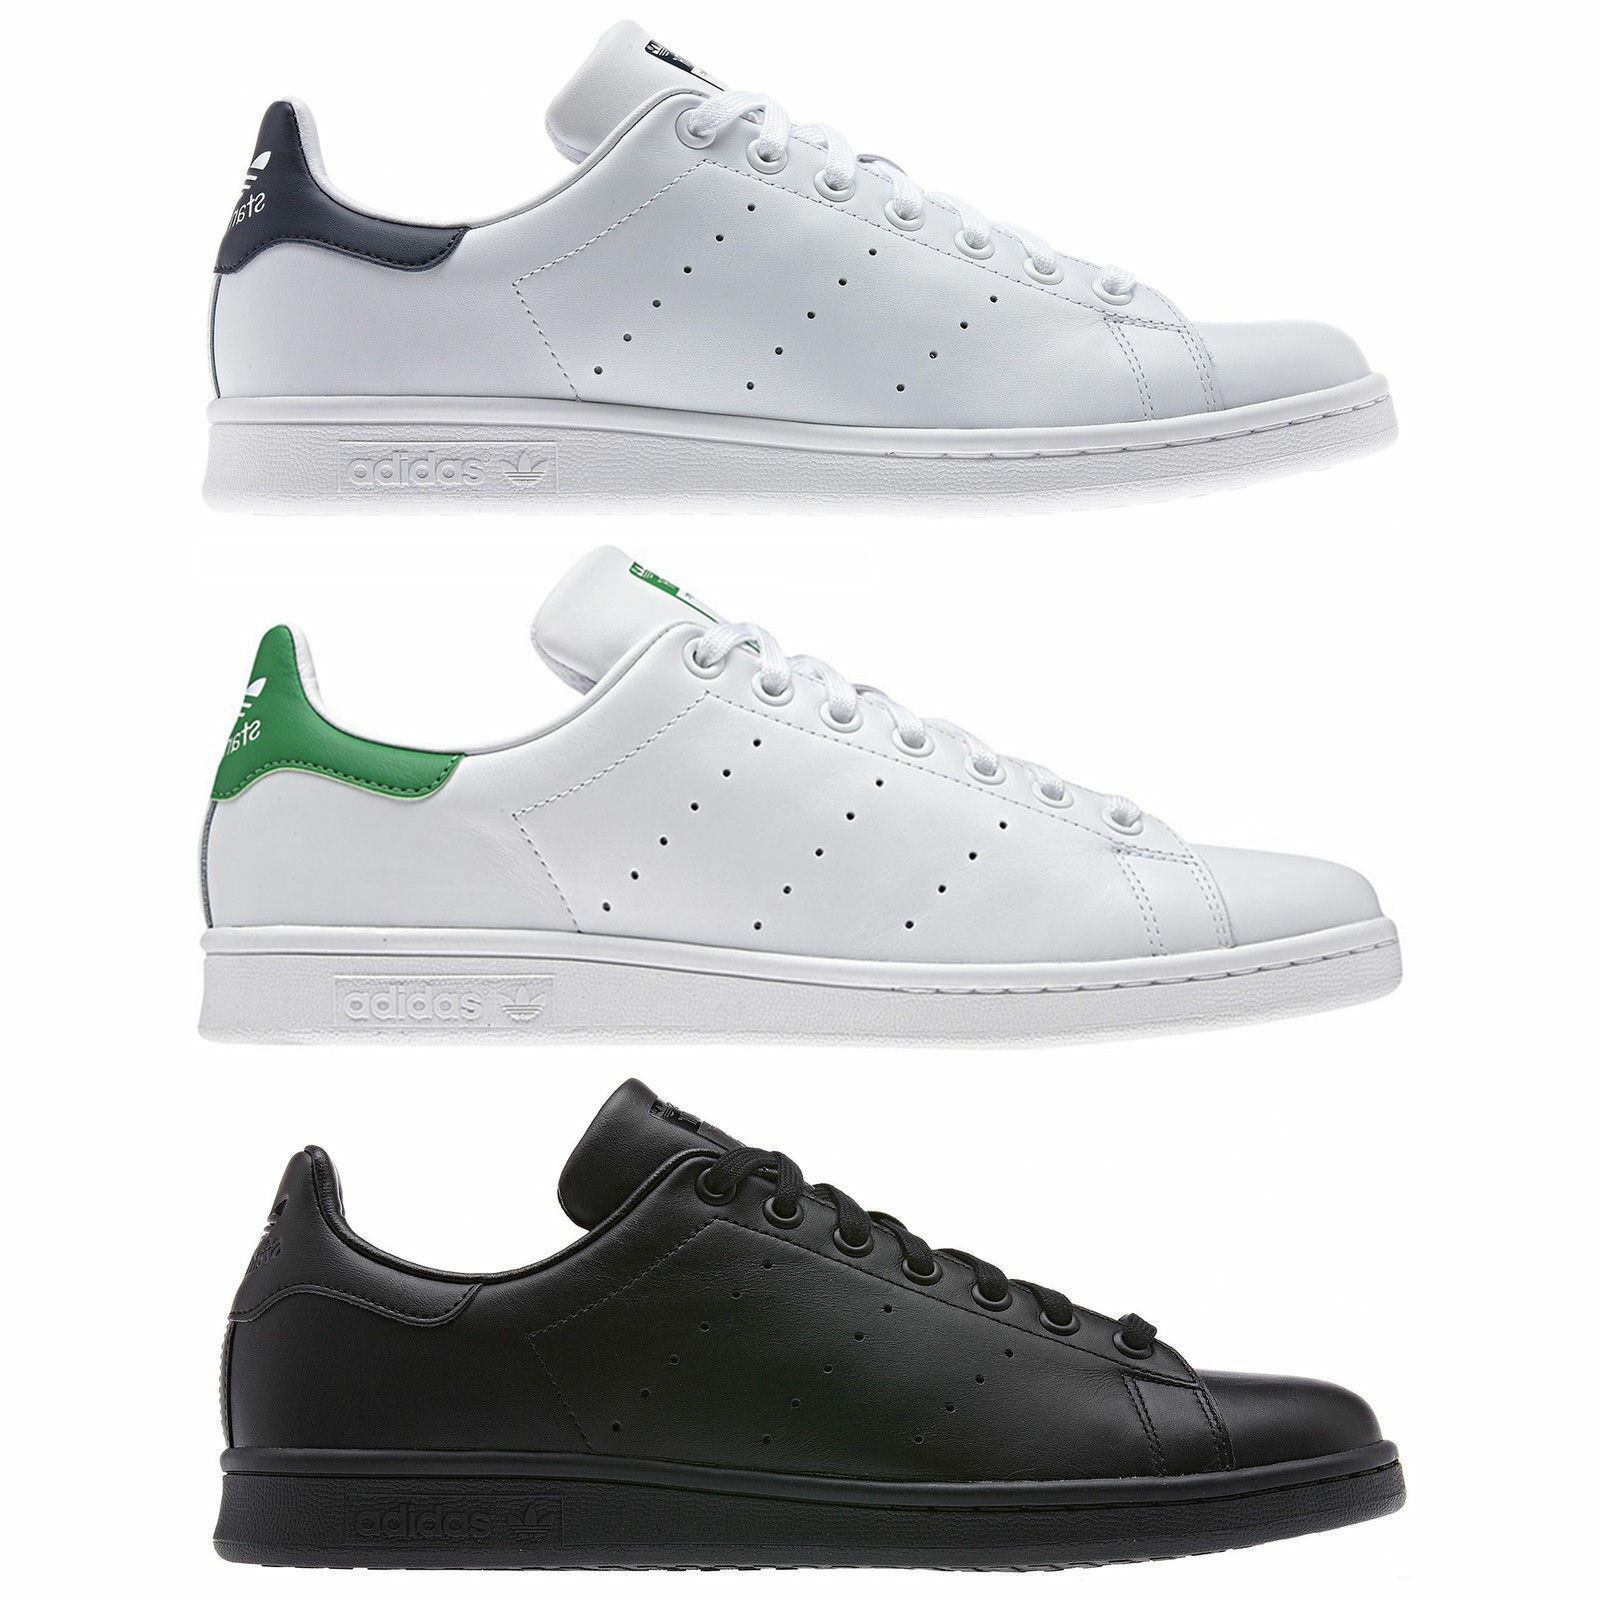 ADIDAS ORIGINALS STAN SMITH TRAINERS SHOES SNEAKERS MEN'S BLACK GREEN NAVY NEW